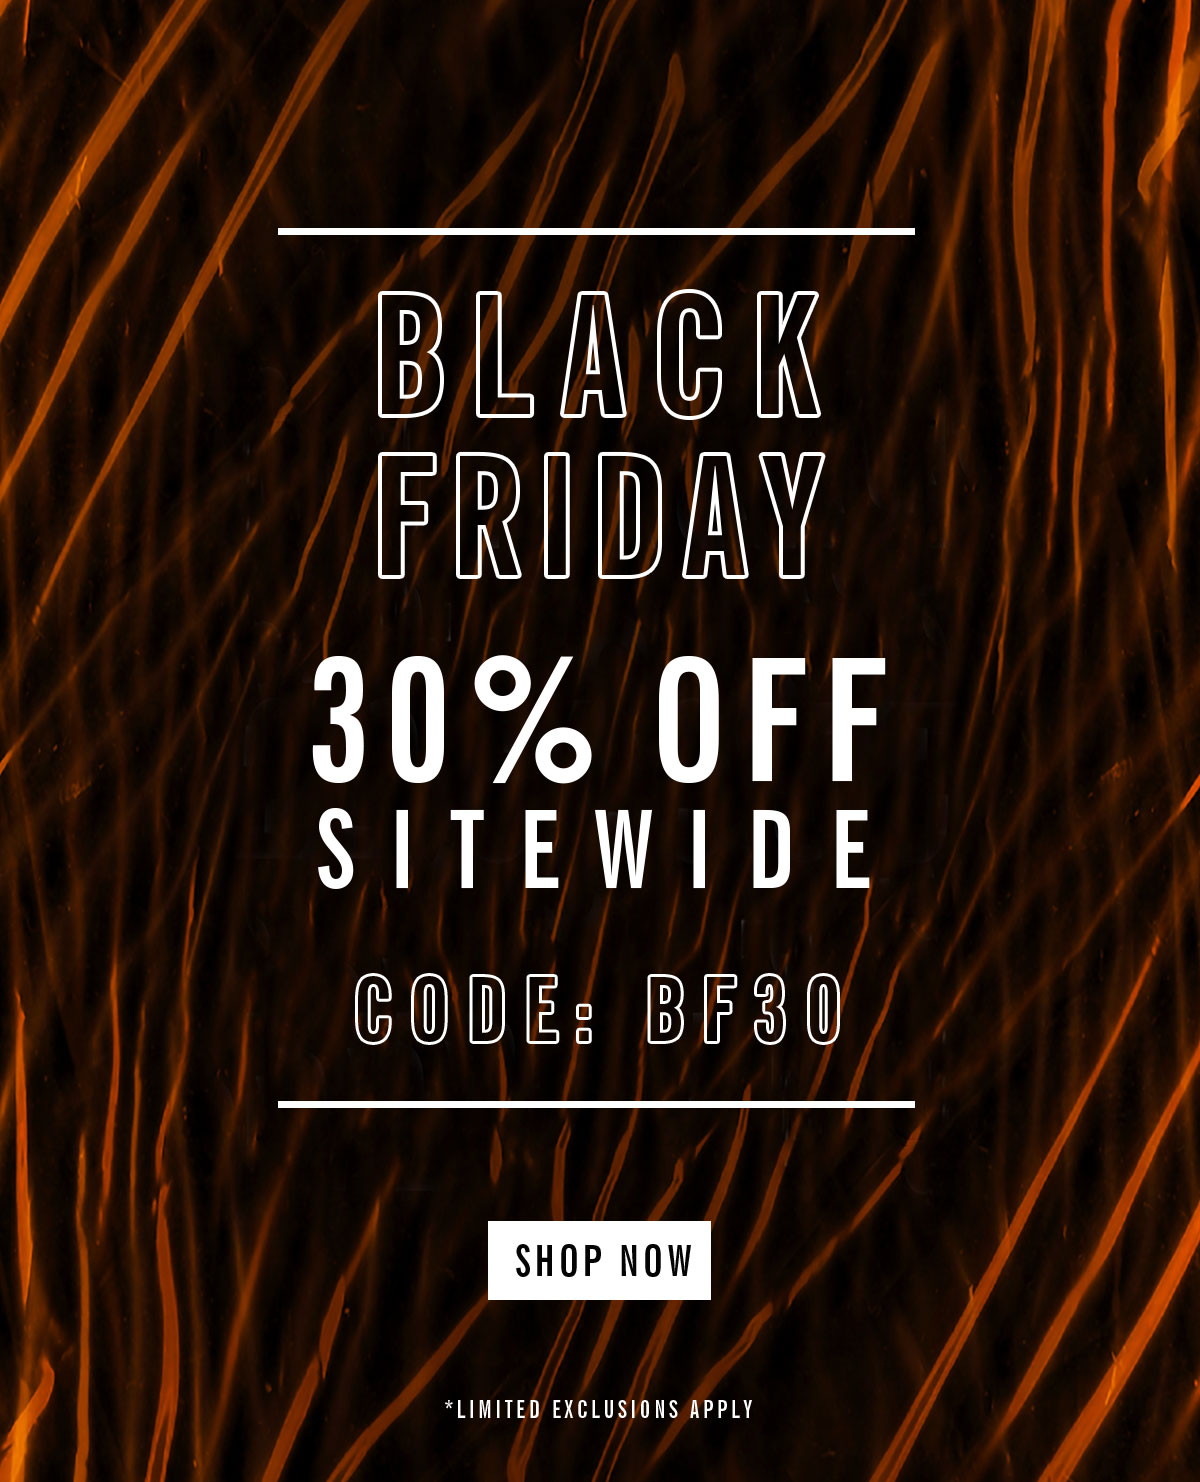 Black Friday | 30% Off Sitewide | Code: BF30 | Shop Now | Limited Exclusions Apply